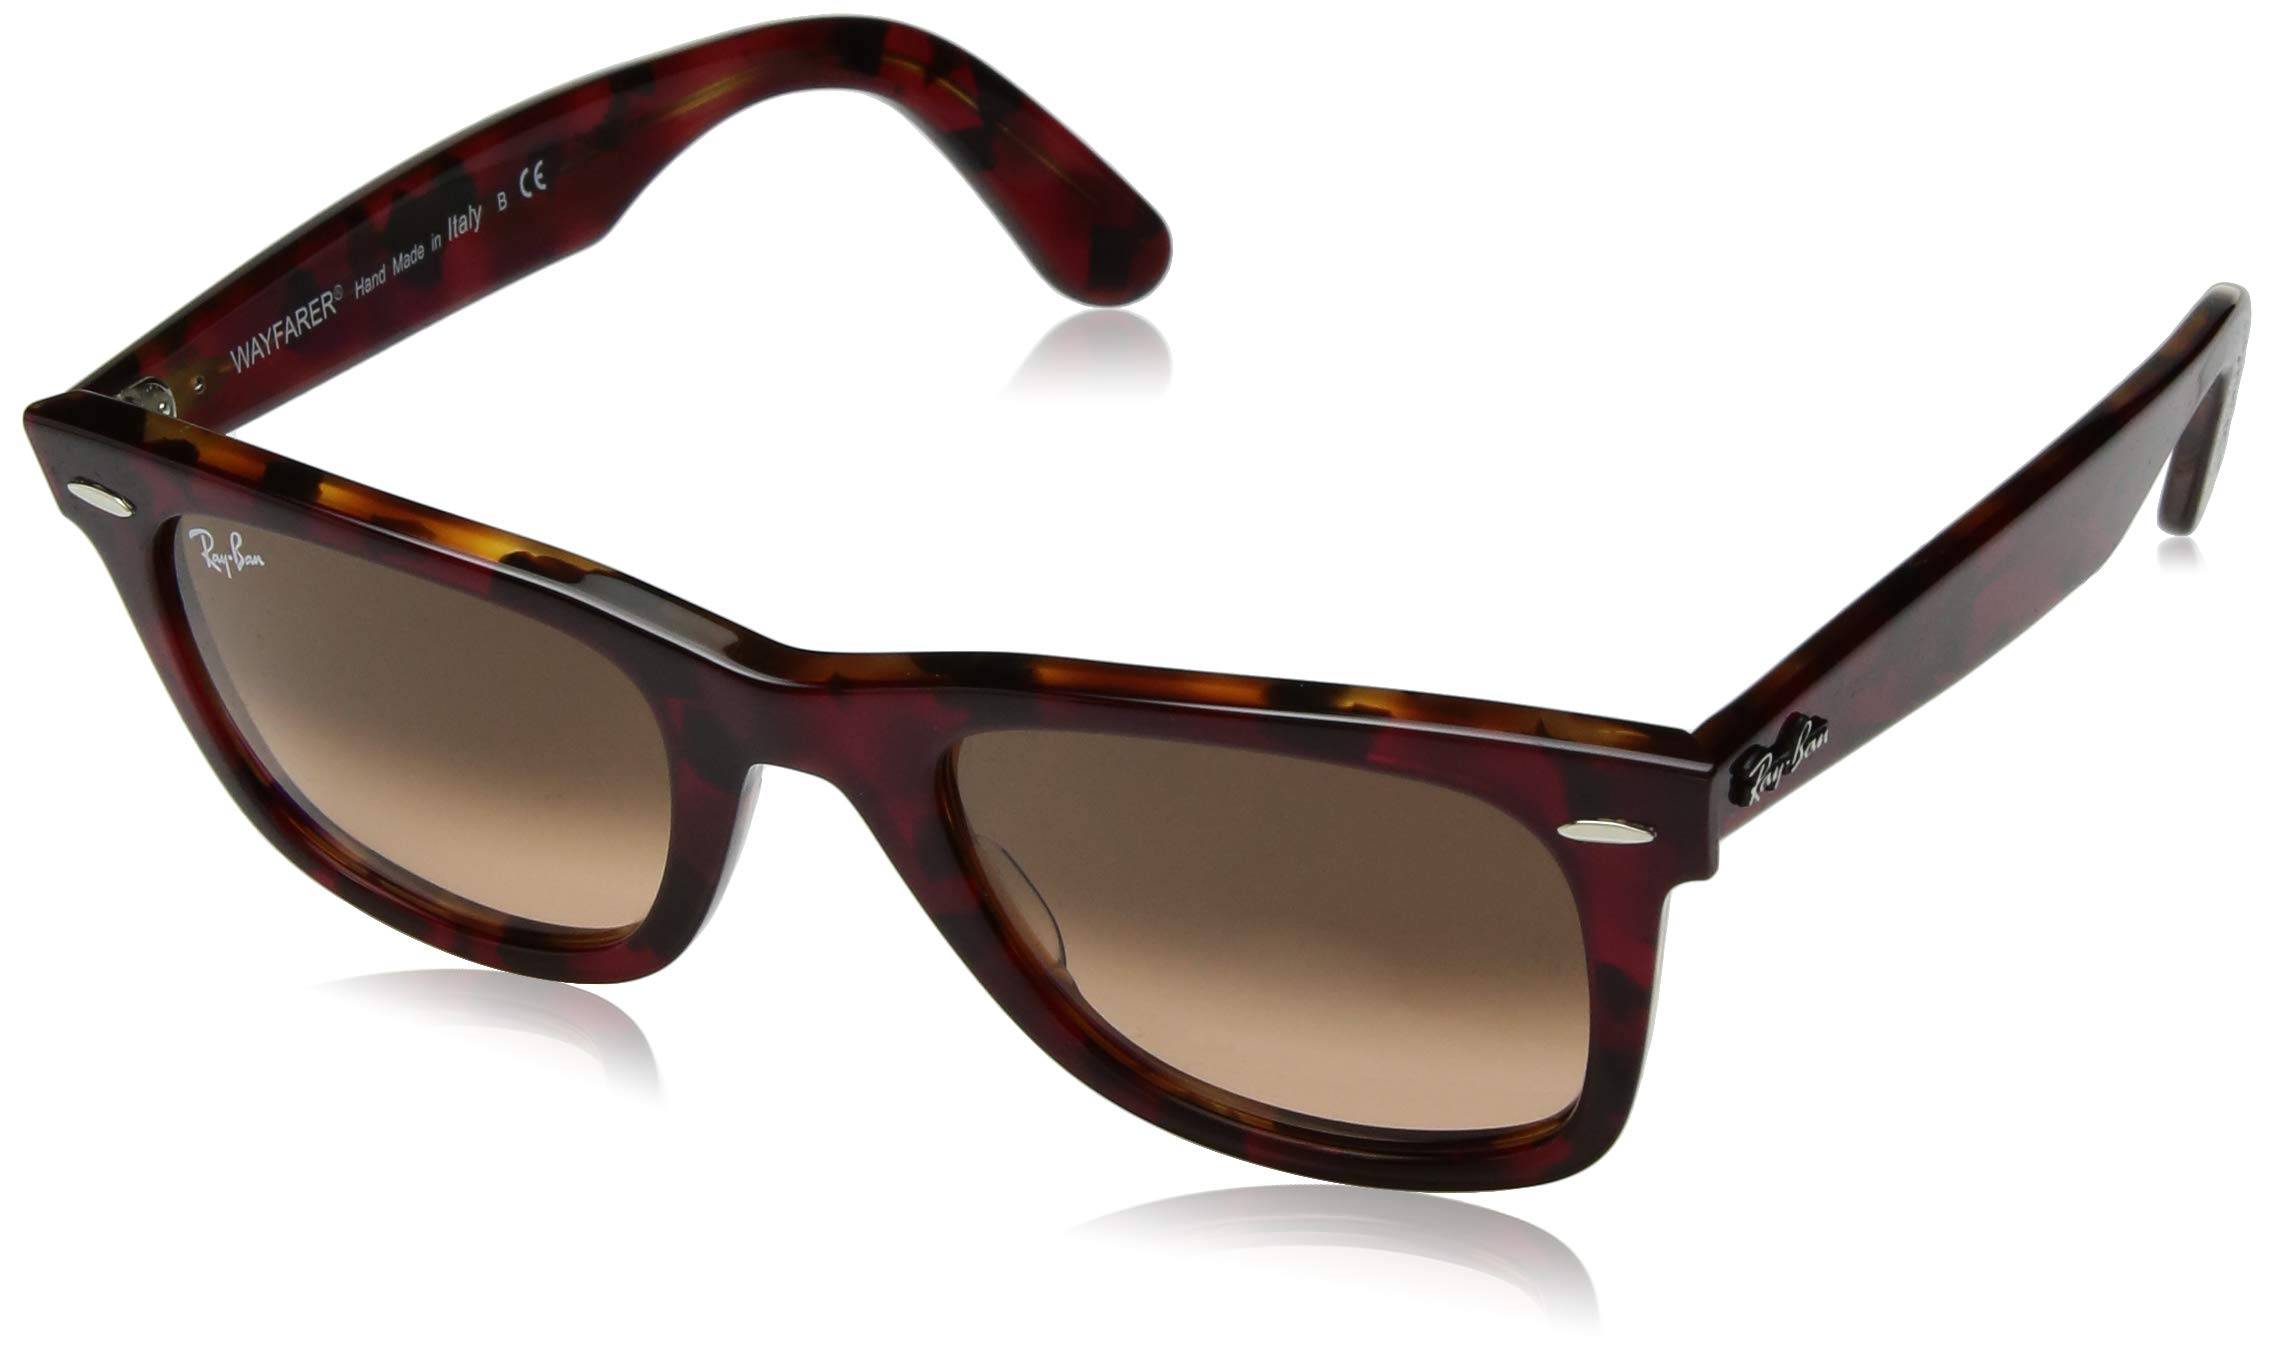 Ray-Ban RB2140 Wayfarer Sunglasses, Red Tortoise/Pink Gradient Brown, 50 mm by RAY-BAN